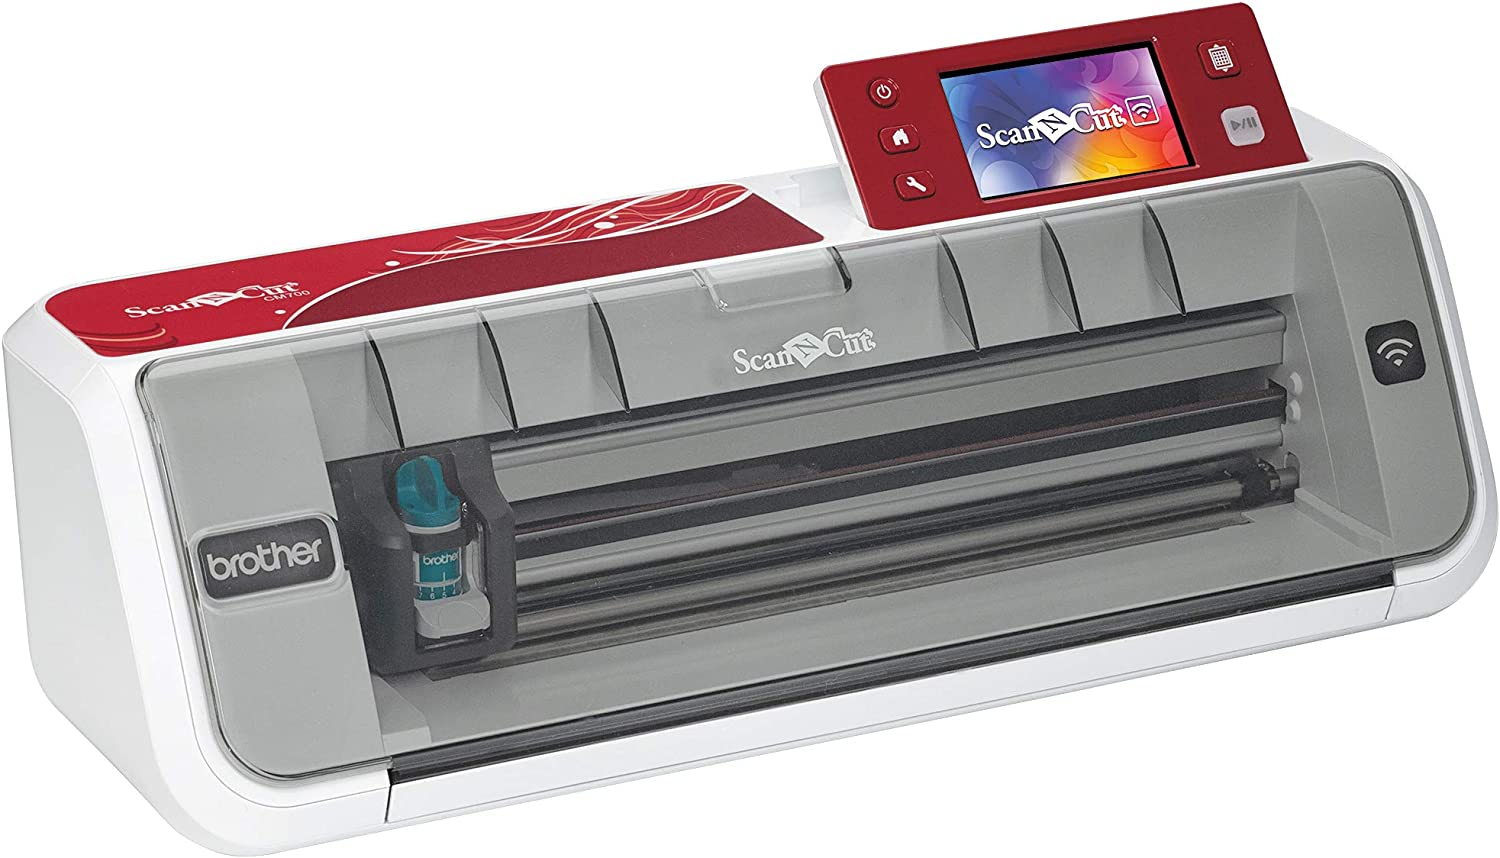 Brother Plotter de Corte Scanncut, Blanco: Amazon.es: Hogar